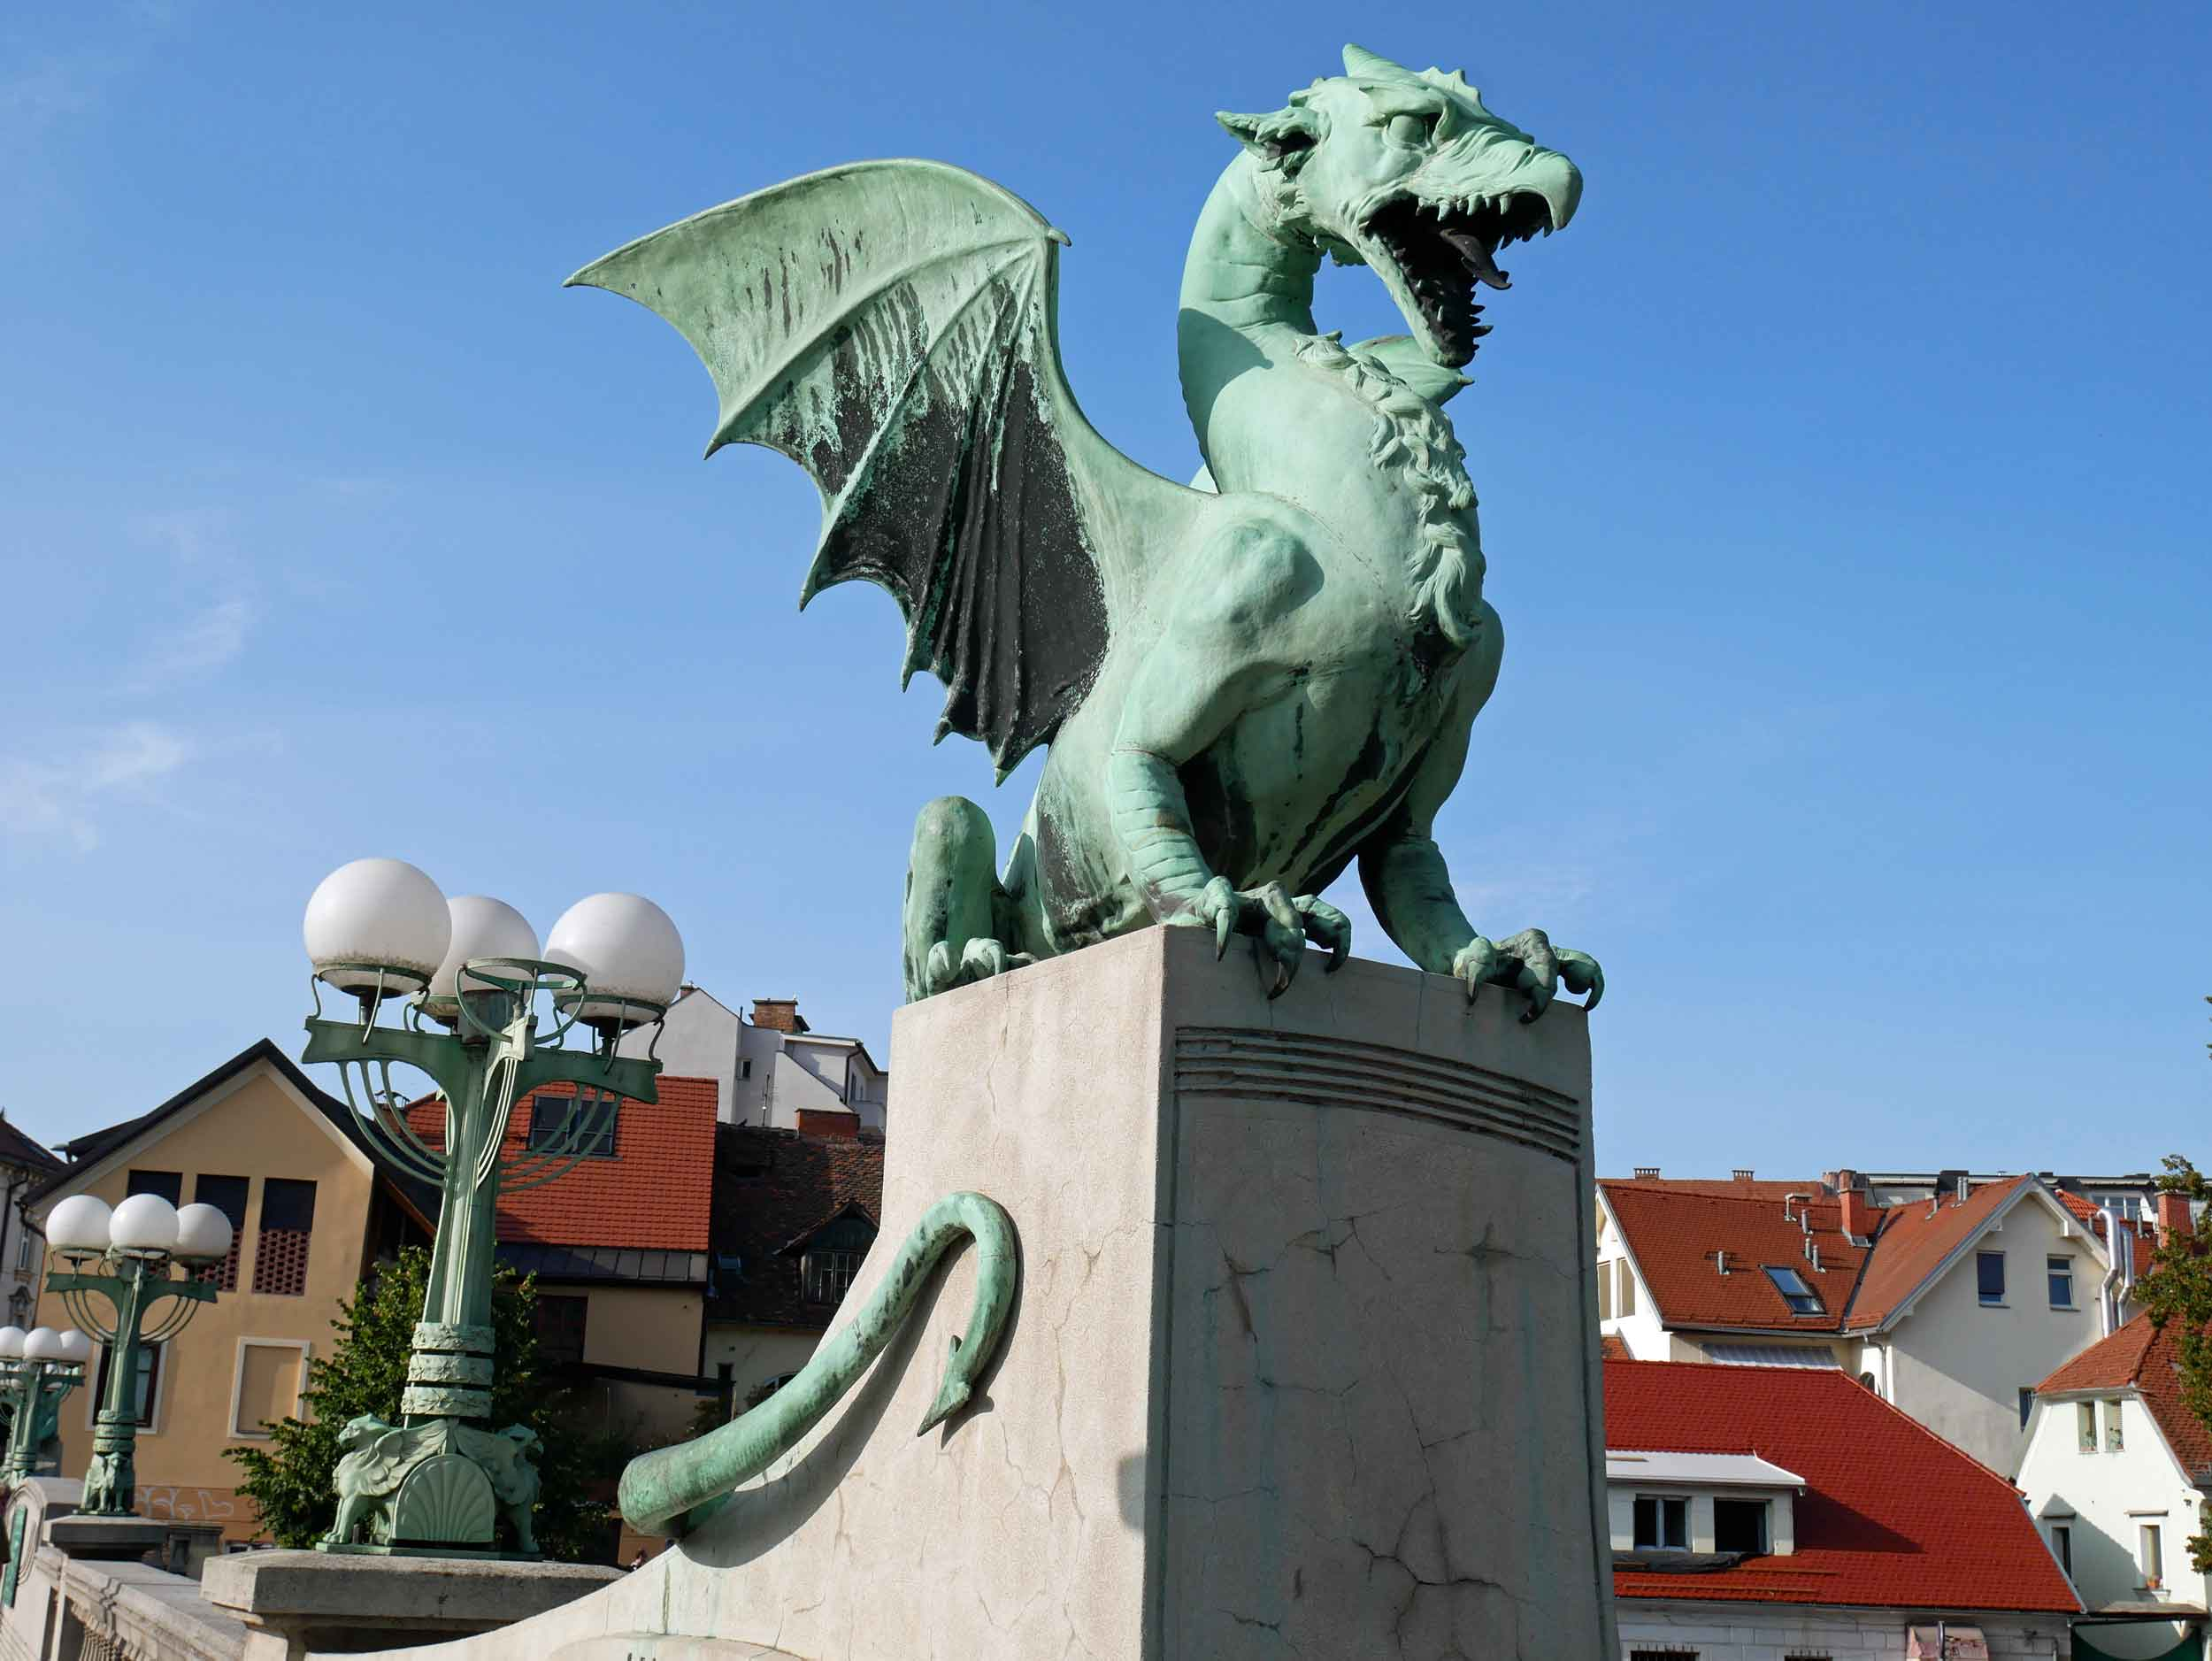 Crossing the Ljubljanica River, the city's stately Dragon Bridge was built in the early 1900s when Ljubljana was still ruled by the Austro-Hungarian monarchy.